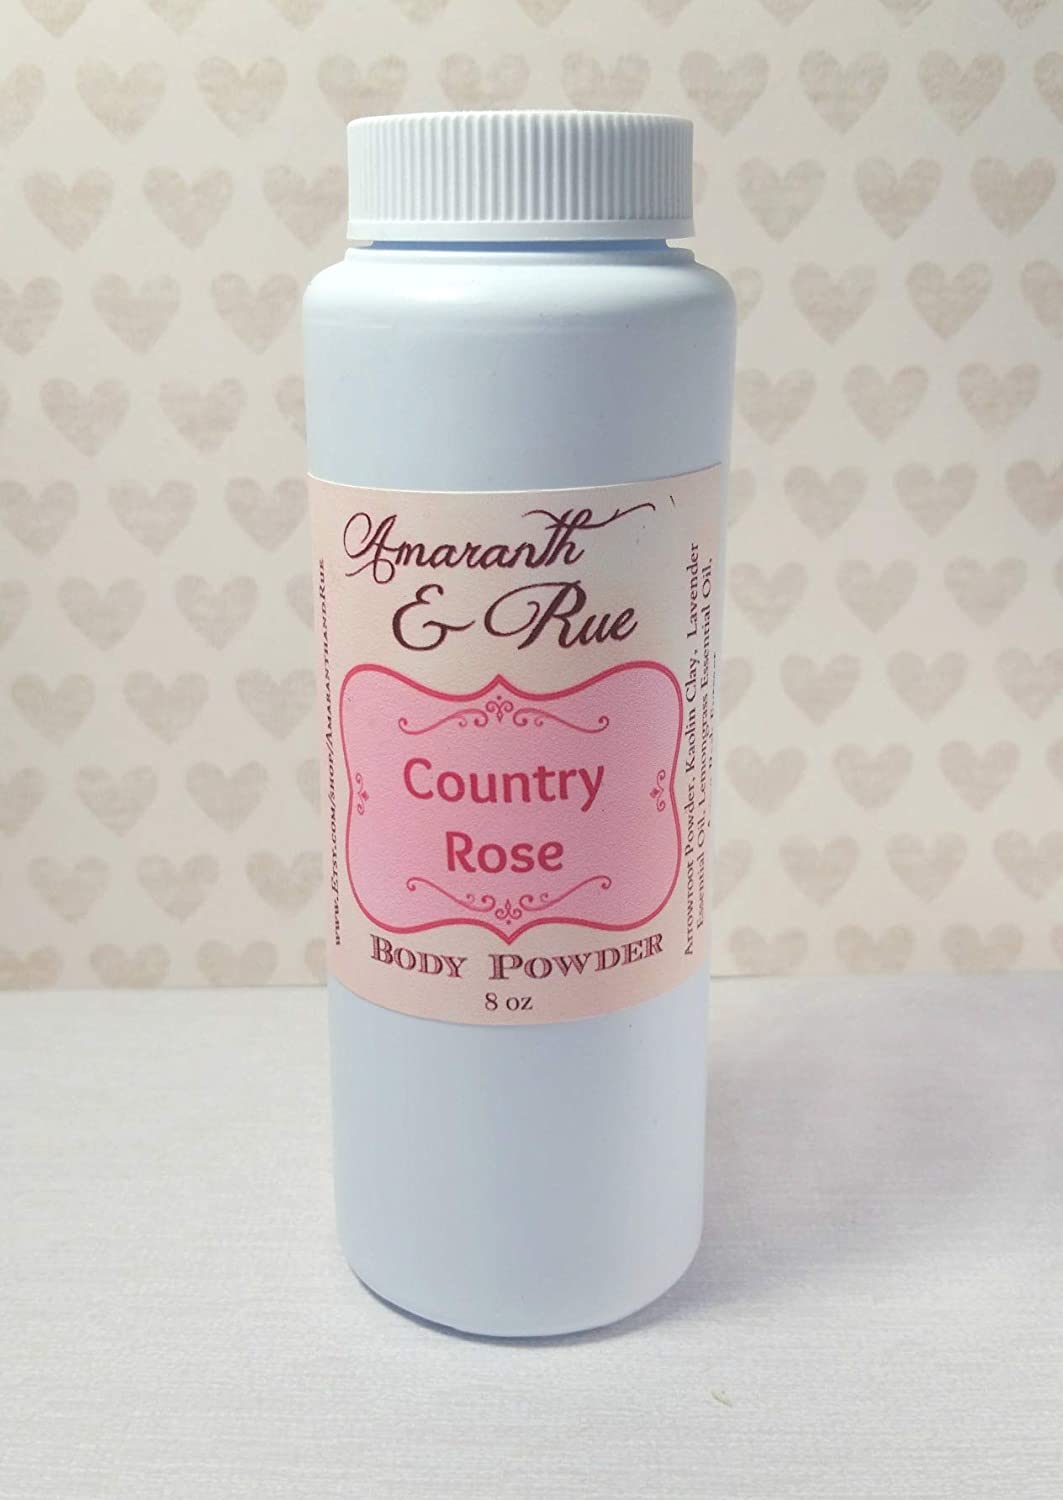 Natural Country Rose Body Powder 8 oz Amaranth & Rue